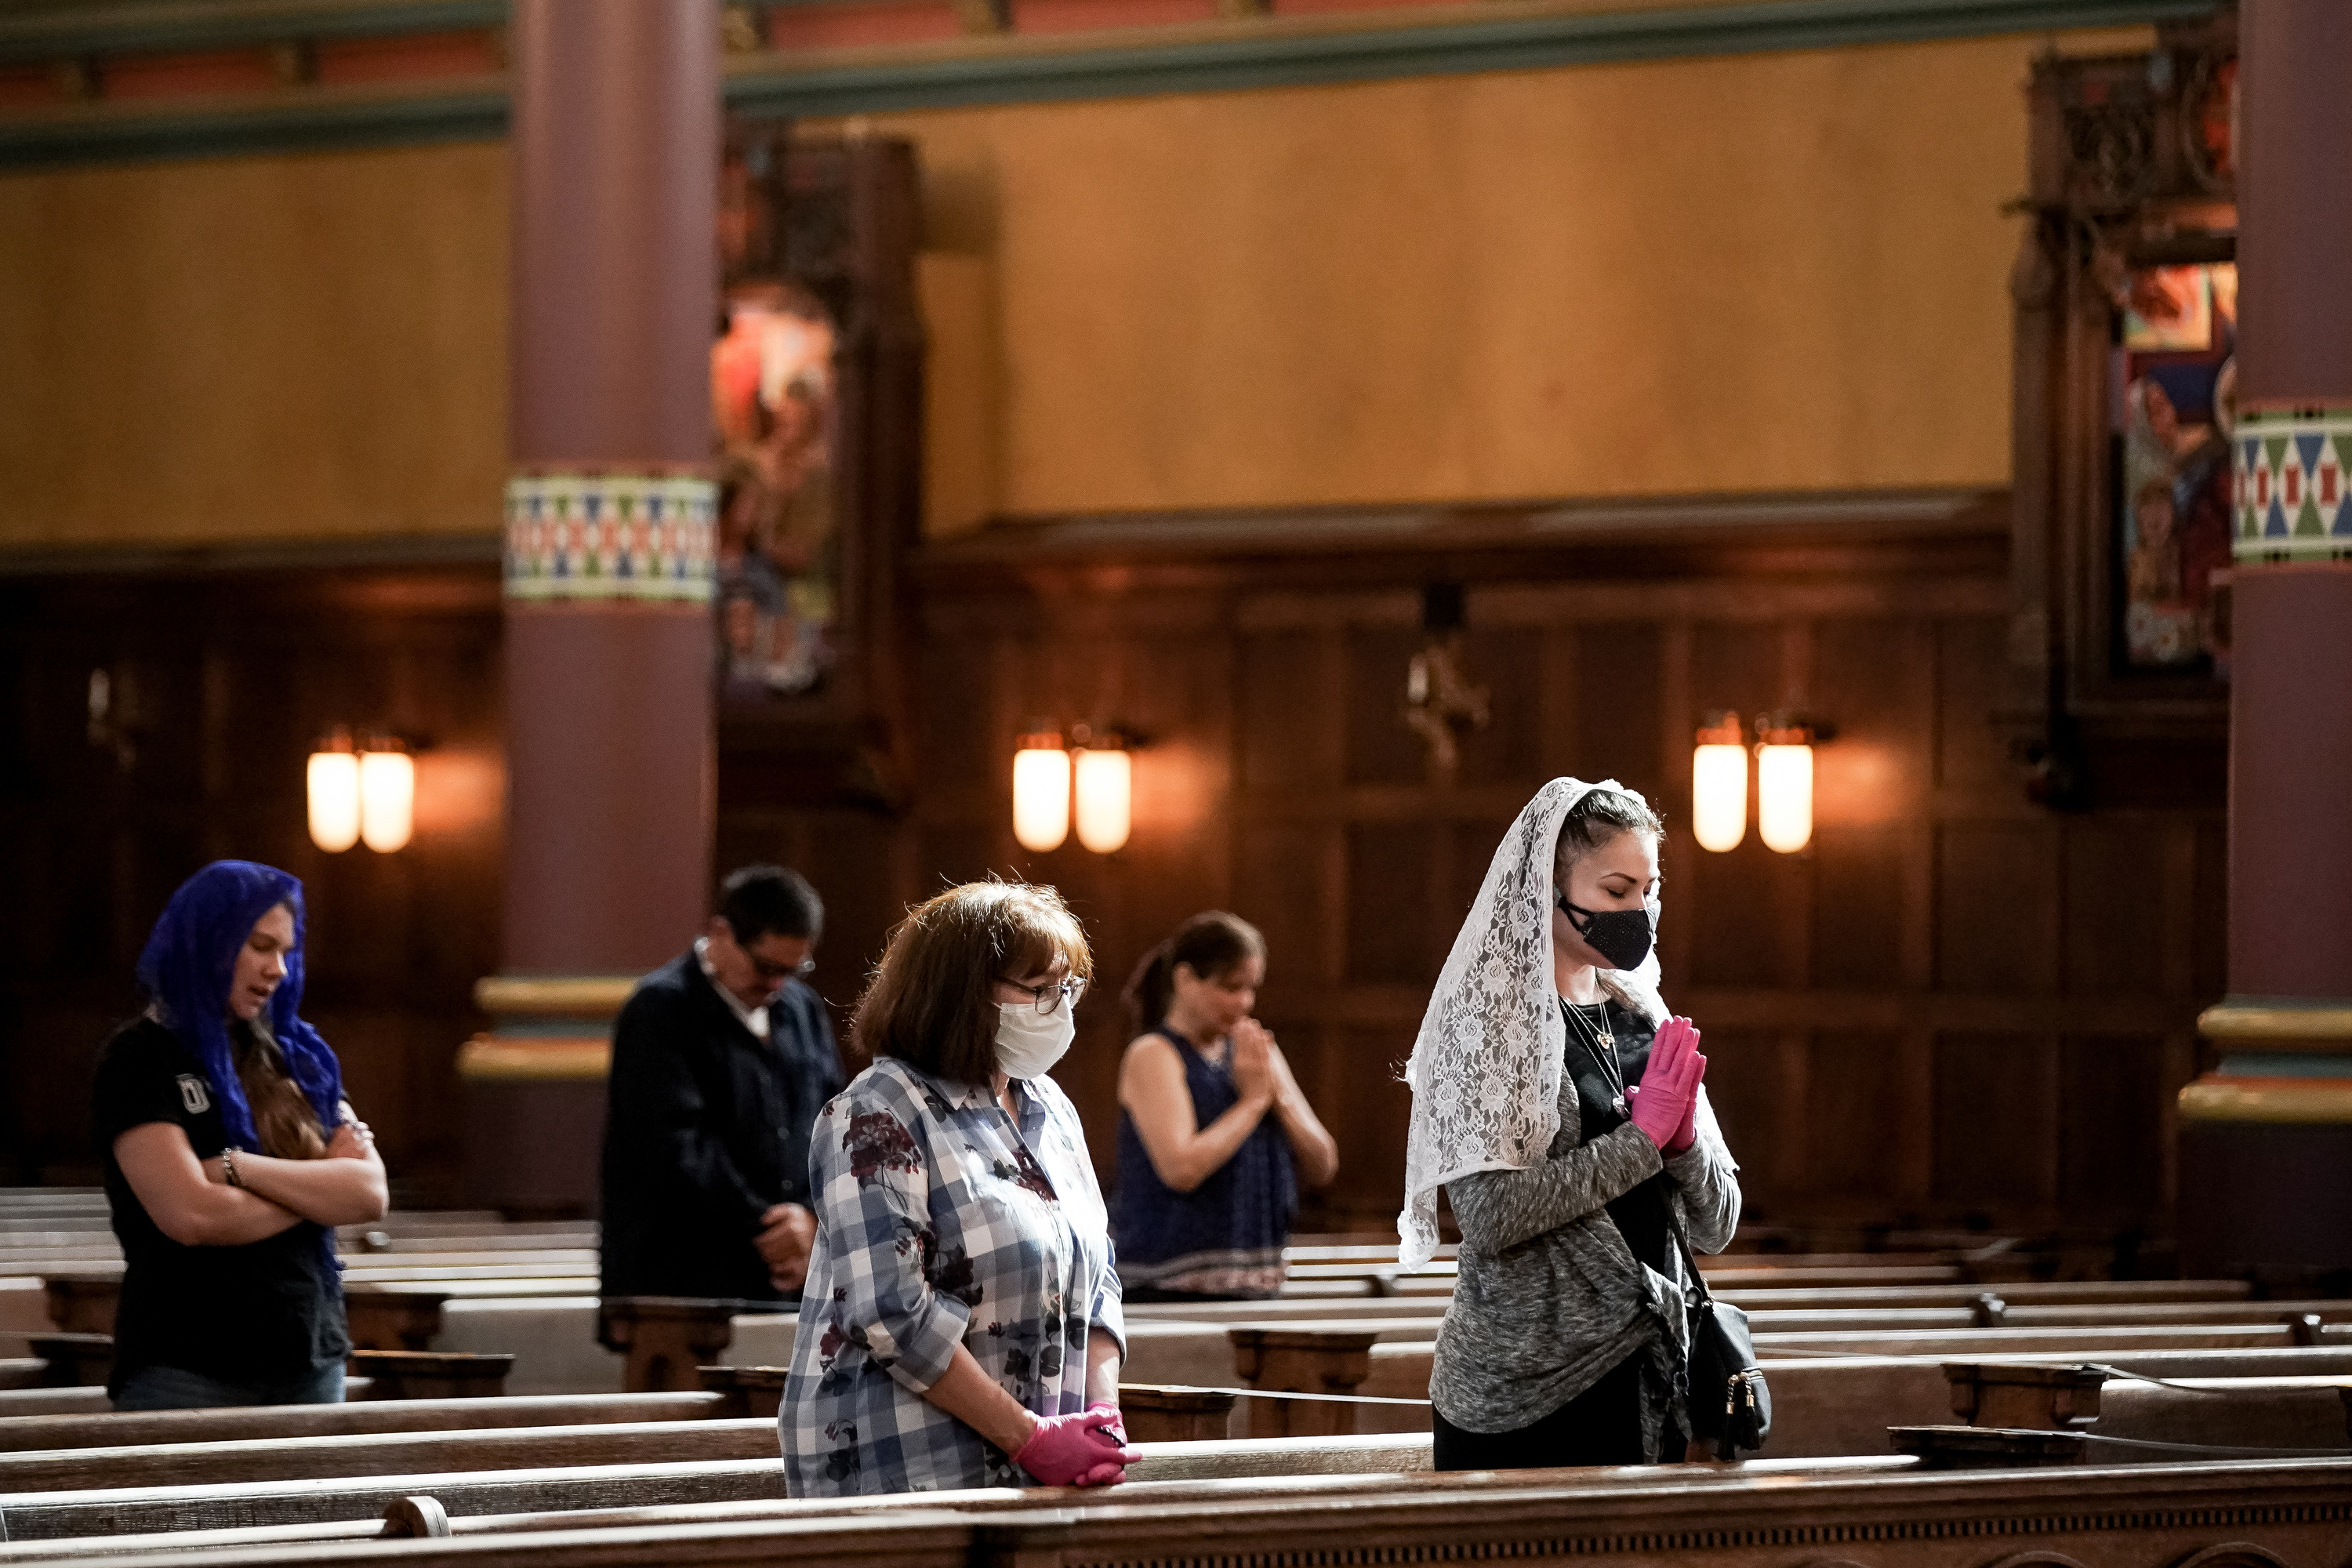 Ursula Quintana, right, and her mother, Joleen Rogers, third from left, attend Mass at the Cathedral of the Madeleine on Tuesday, May 12, 2020.